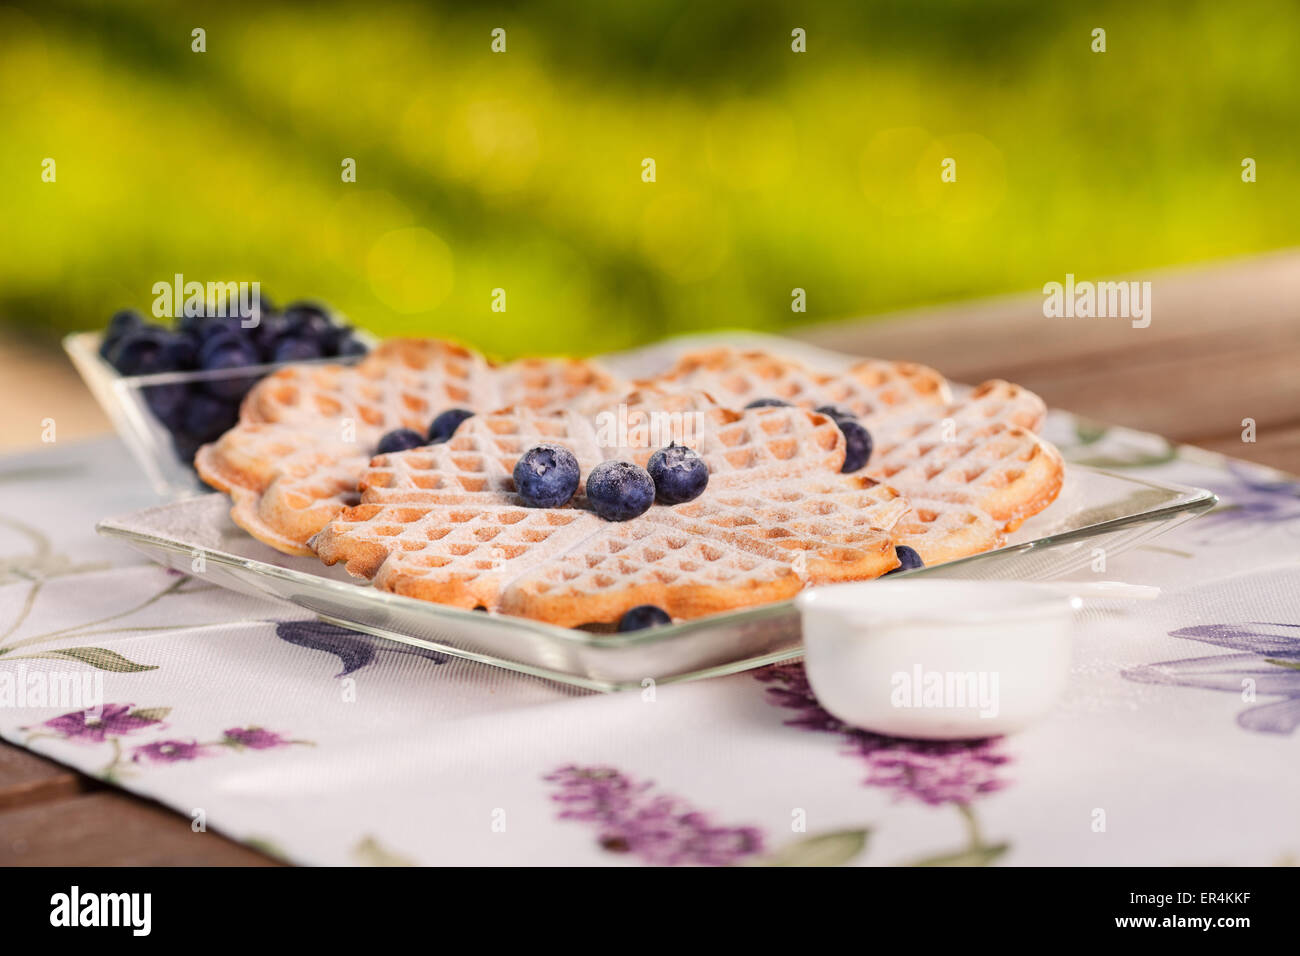 Belgian waffles taste the best with blueberry. Debica, Poland - Stock Image